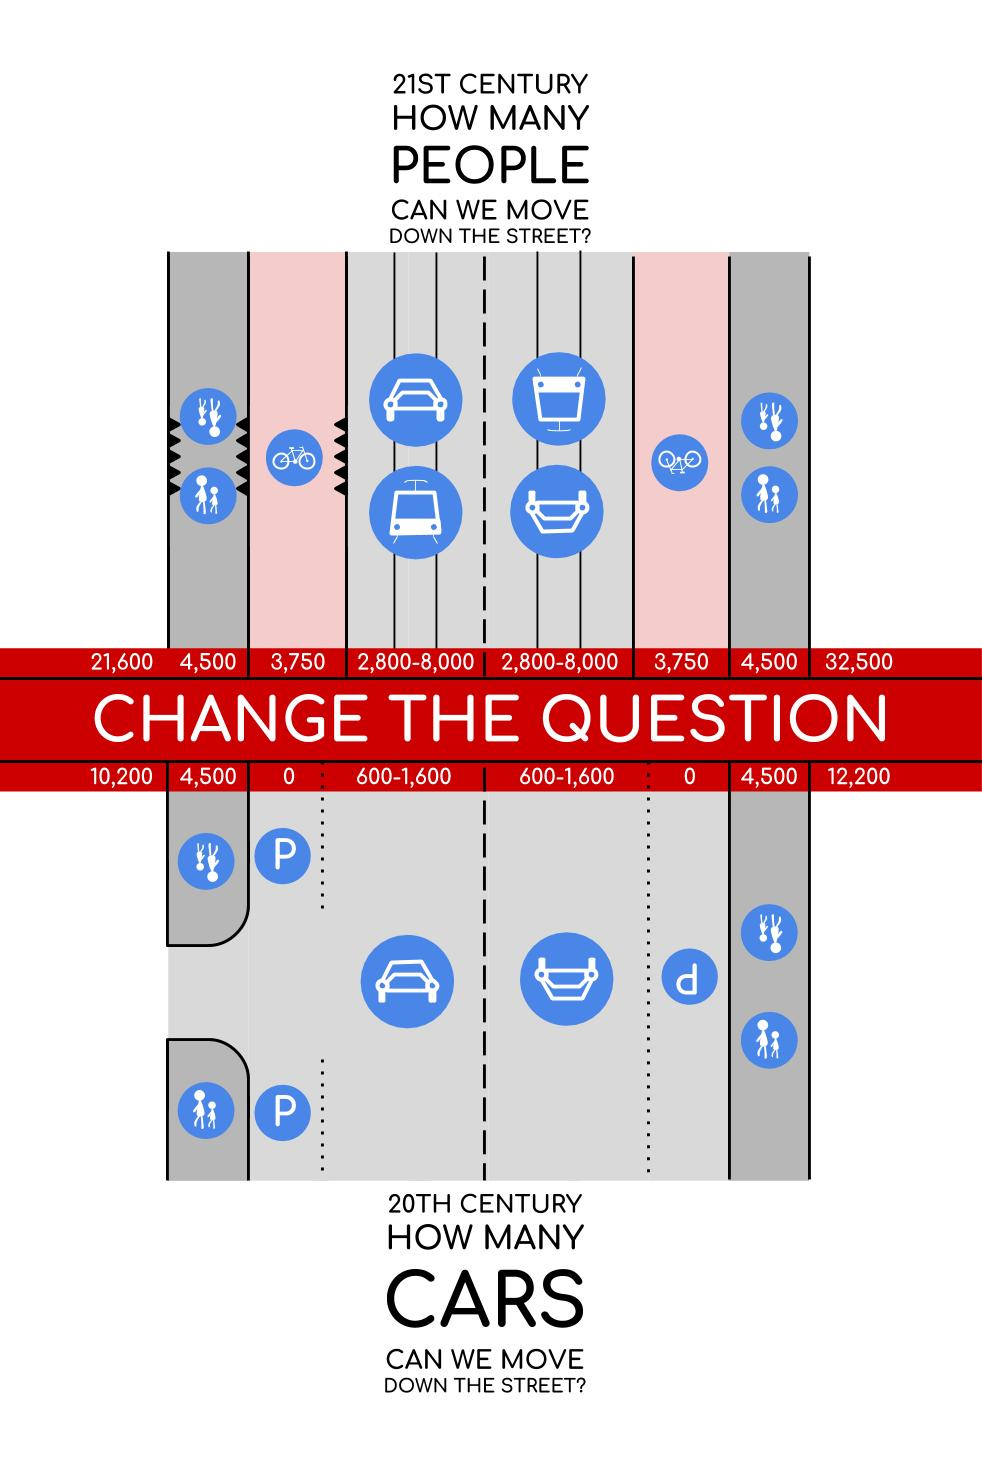 Change The Question - Move People